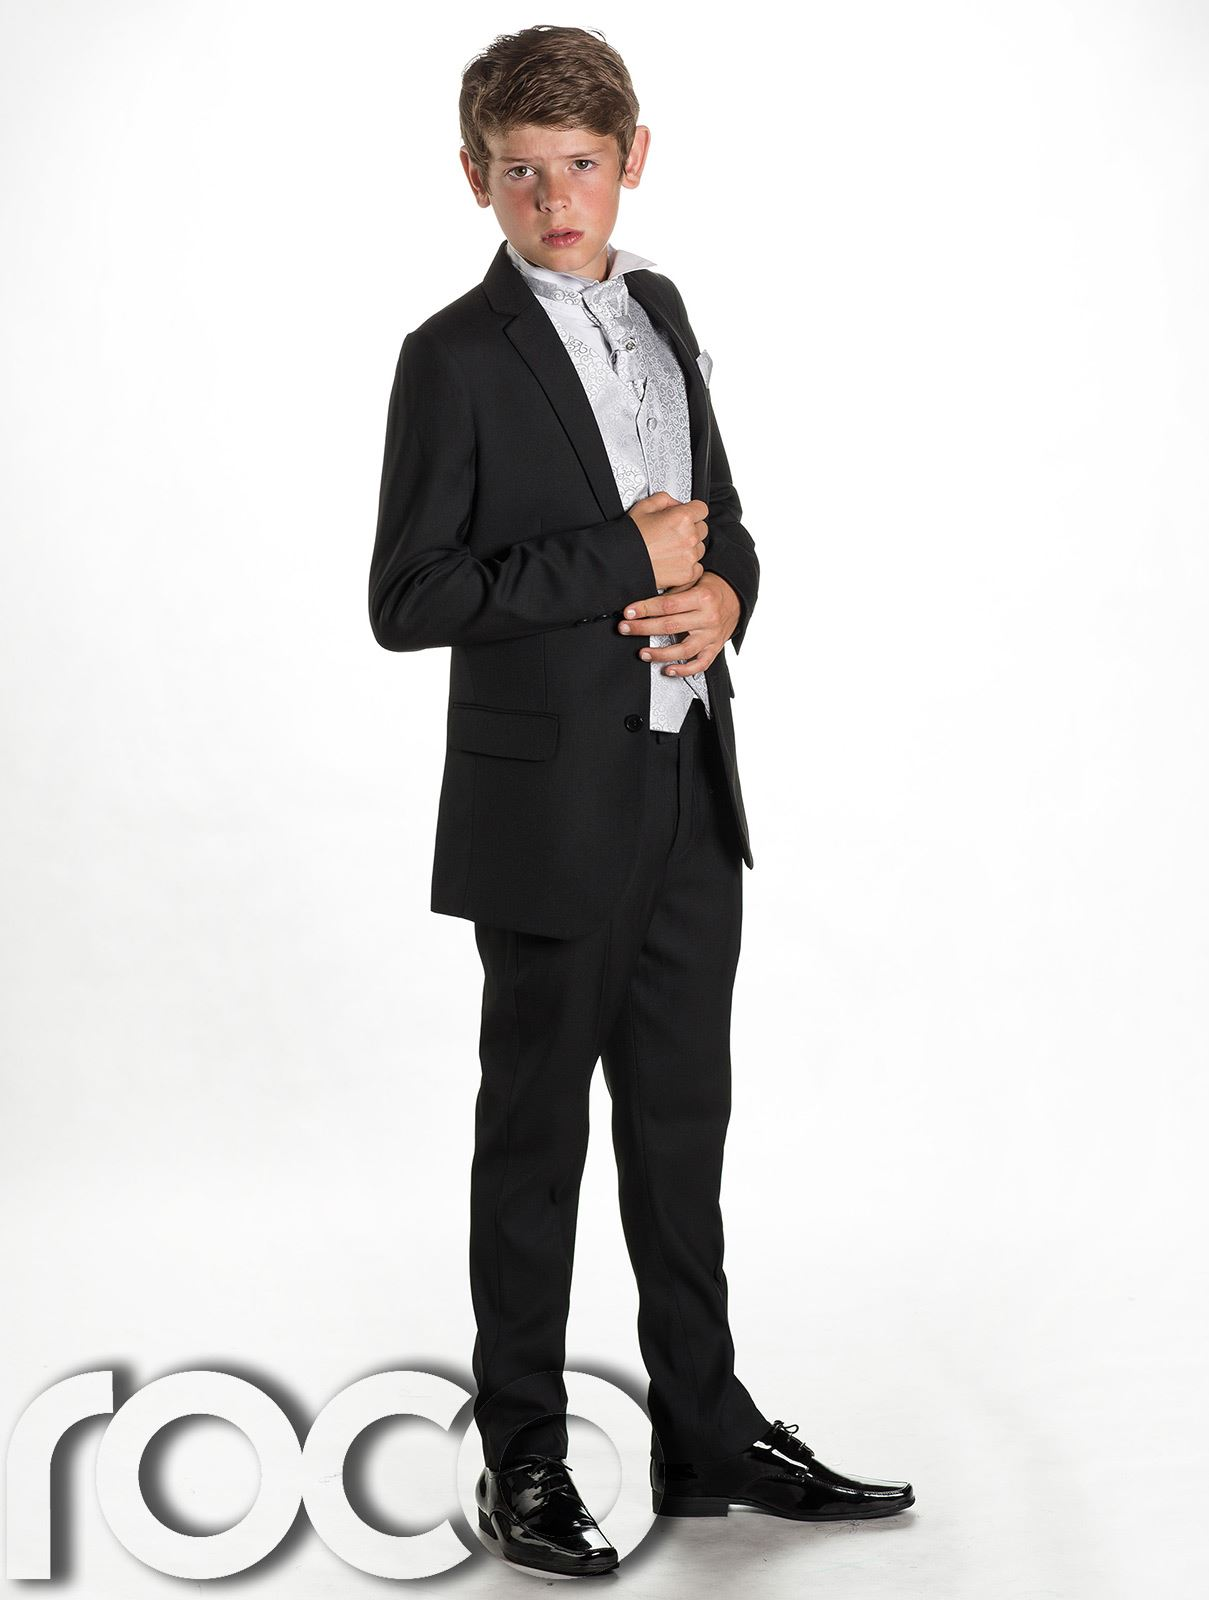 Boys Black Wedding Suit, Page Boy Suit, Boys Formal Suit, Black ...